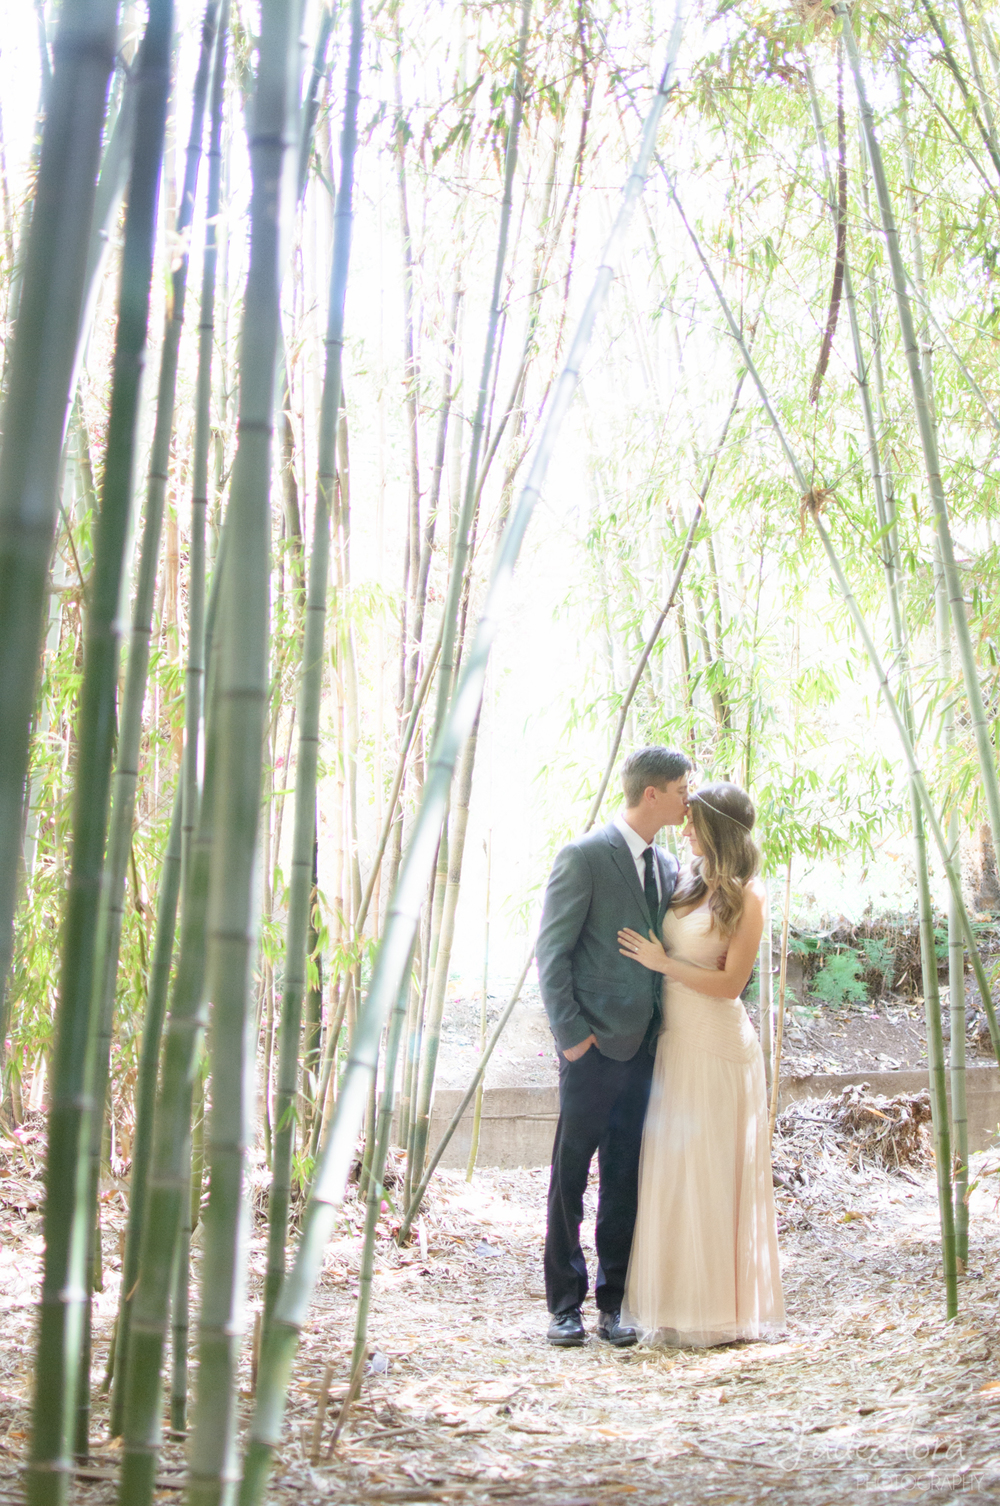 Wedding Couple Portrait in Bamboo Forest